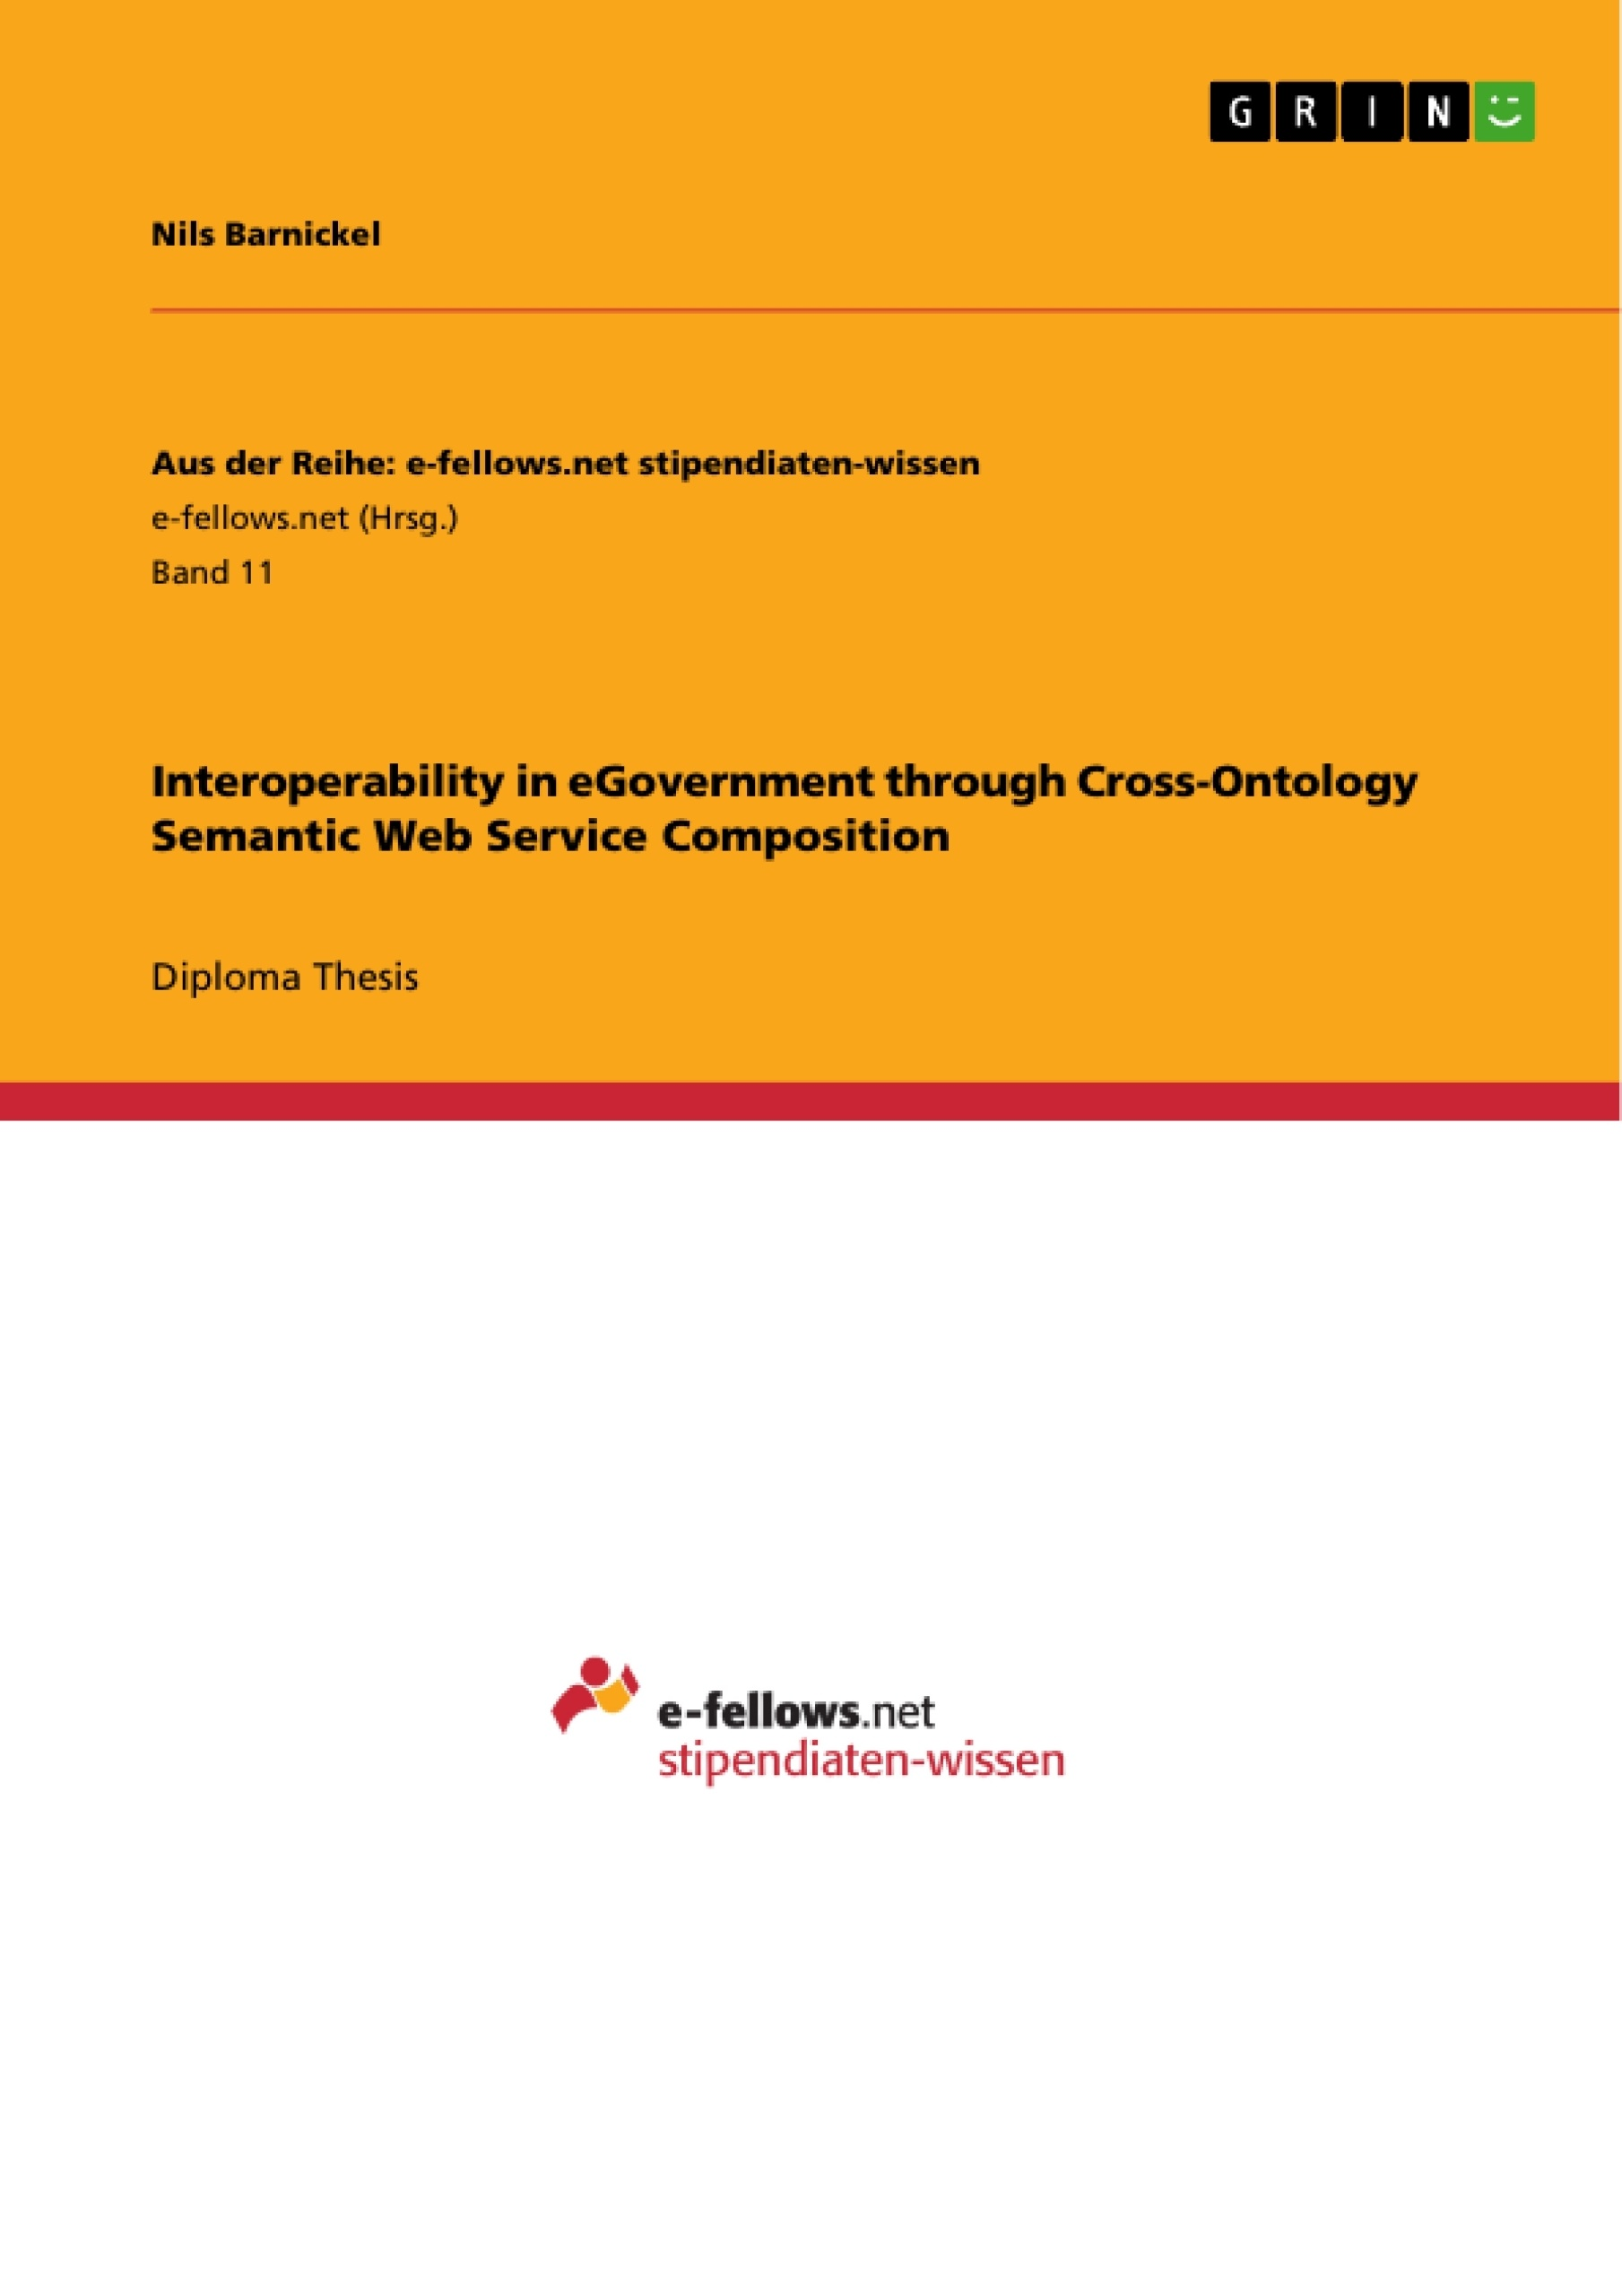 Title: Interoperability in eGovernment through Cross-Ontology Semantic Web Service Composition